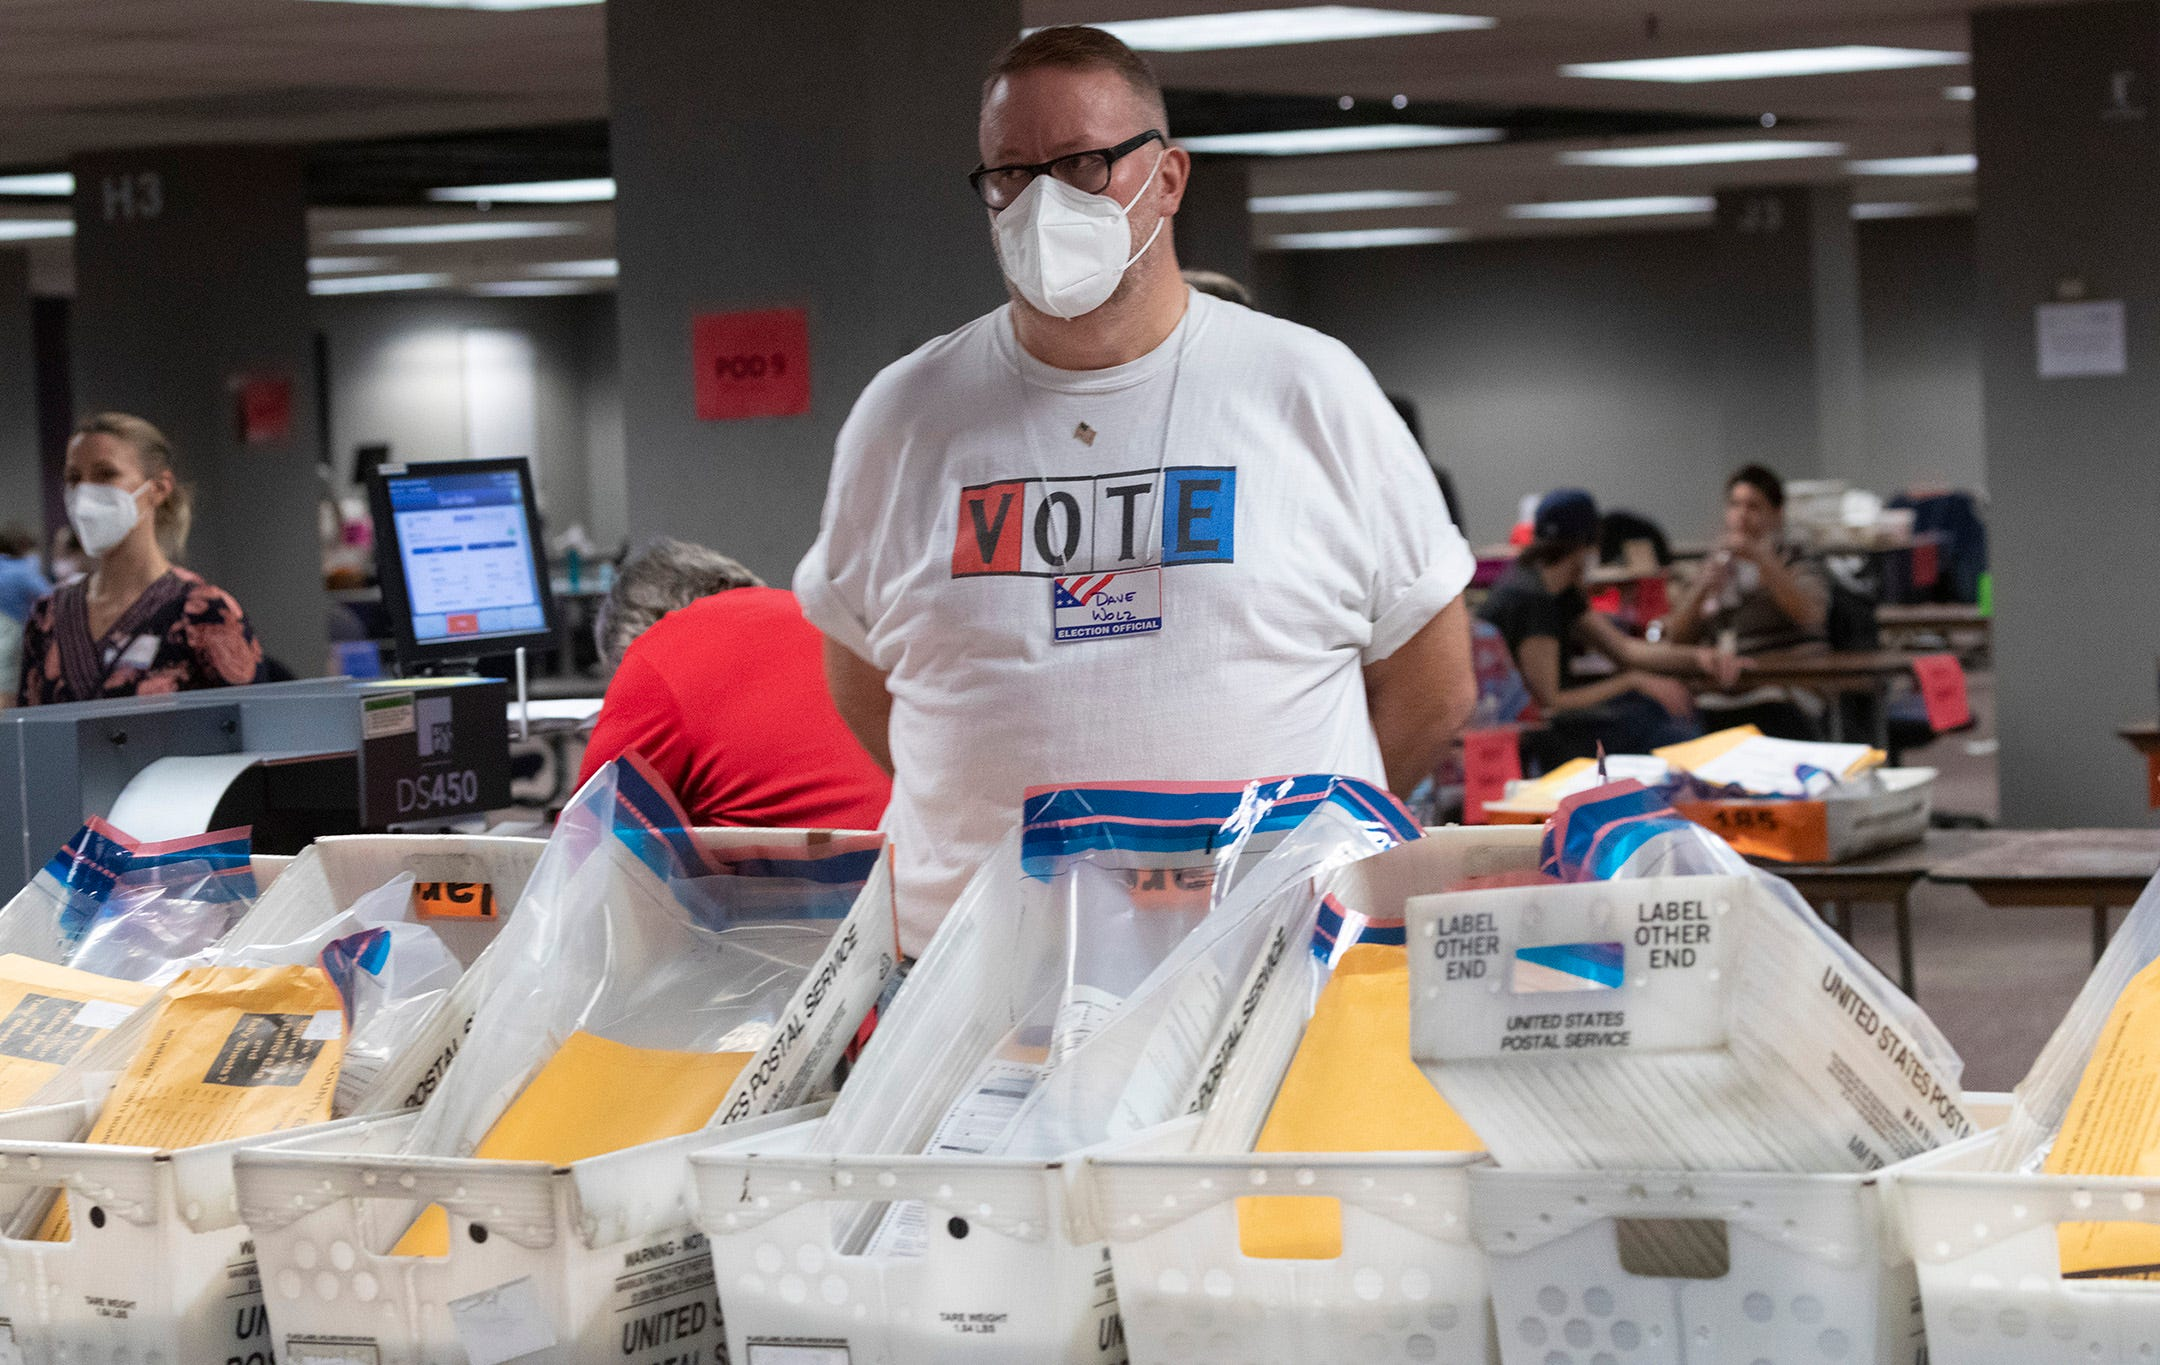 Workers process ballots Tuesday at the City of Milwaukee Central Count Facility, 501 W. Michigan Ave. Split into three shifts, tabulators are positioned in pods of around 50 people to limit the amount of interaction among the hundreds working there because of the coronavirus.